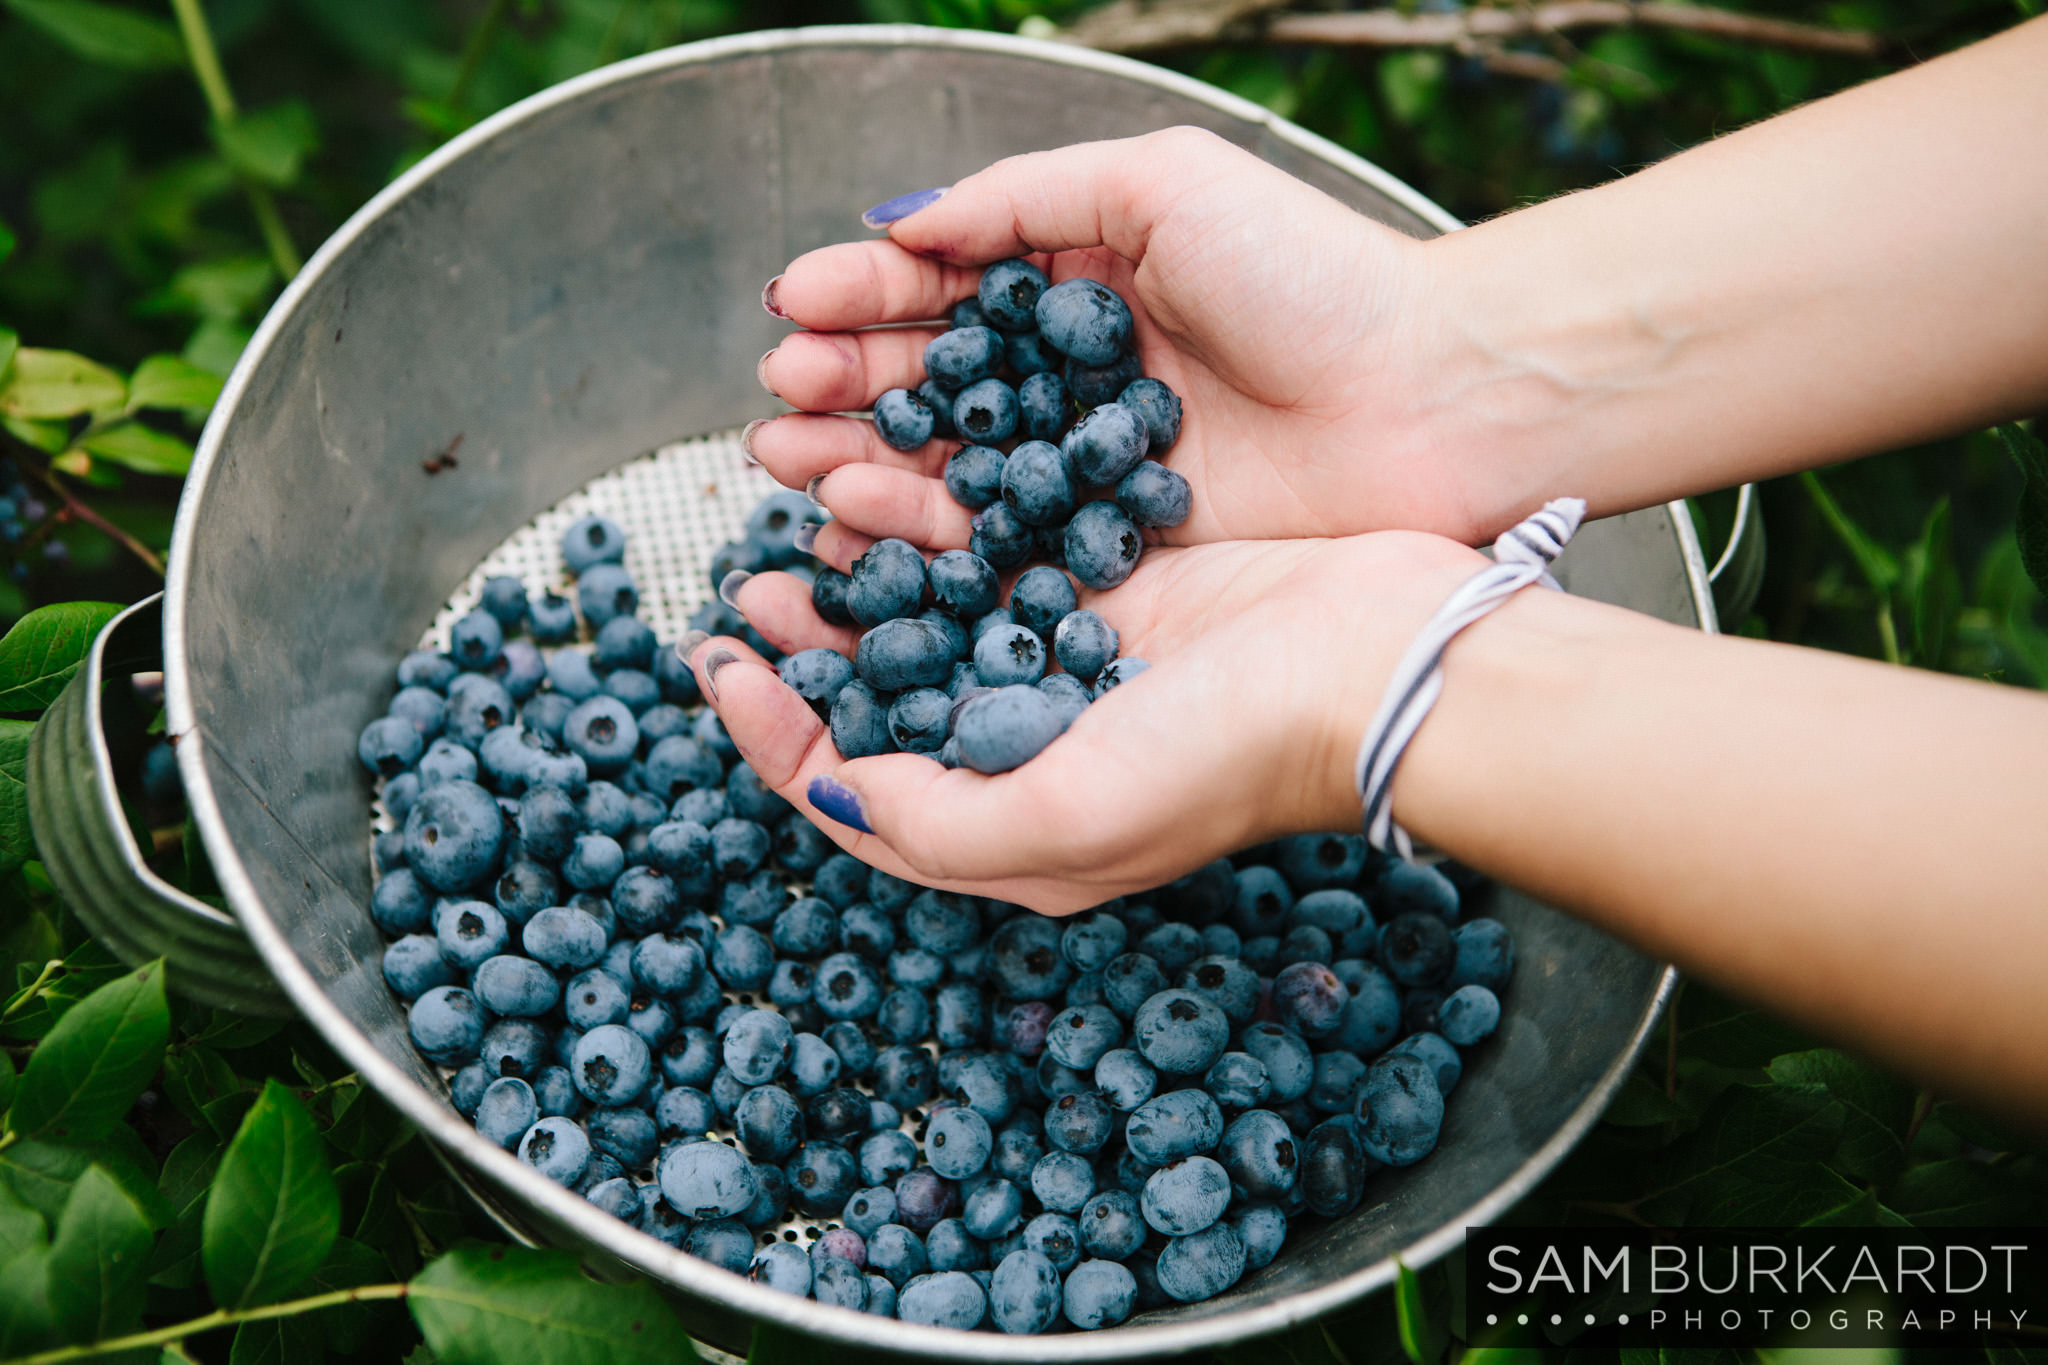 samburkardt_blueberries_kent_connecticut_008.jpg